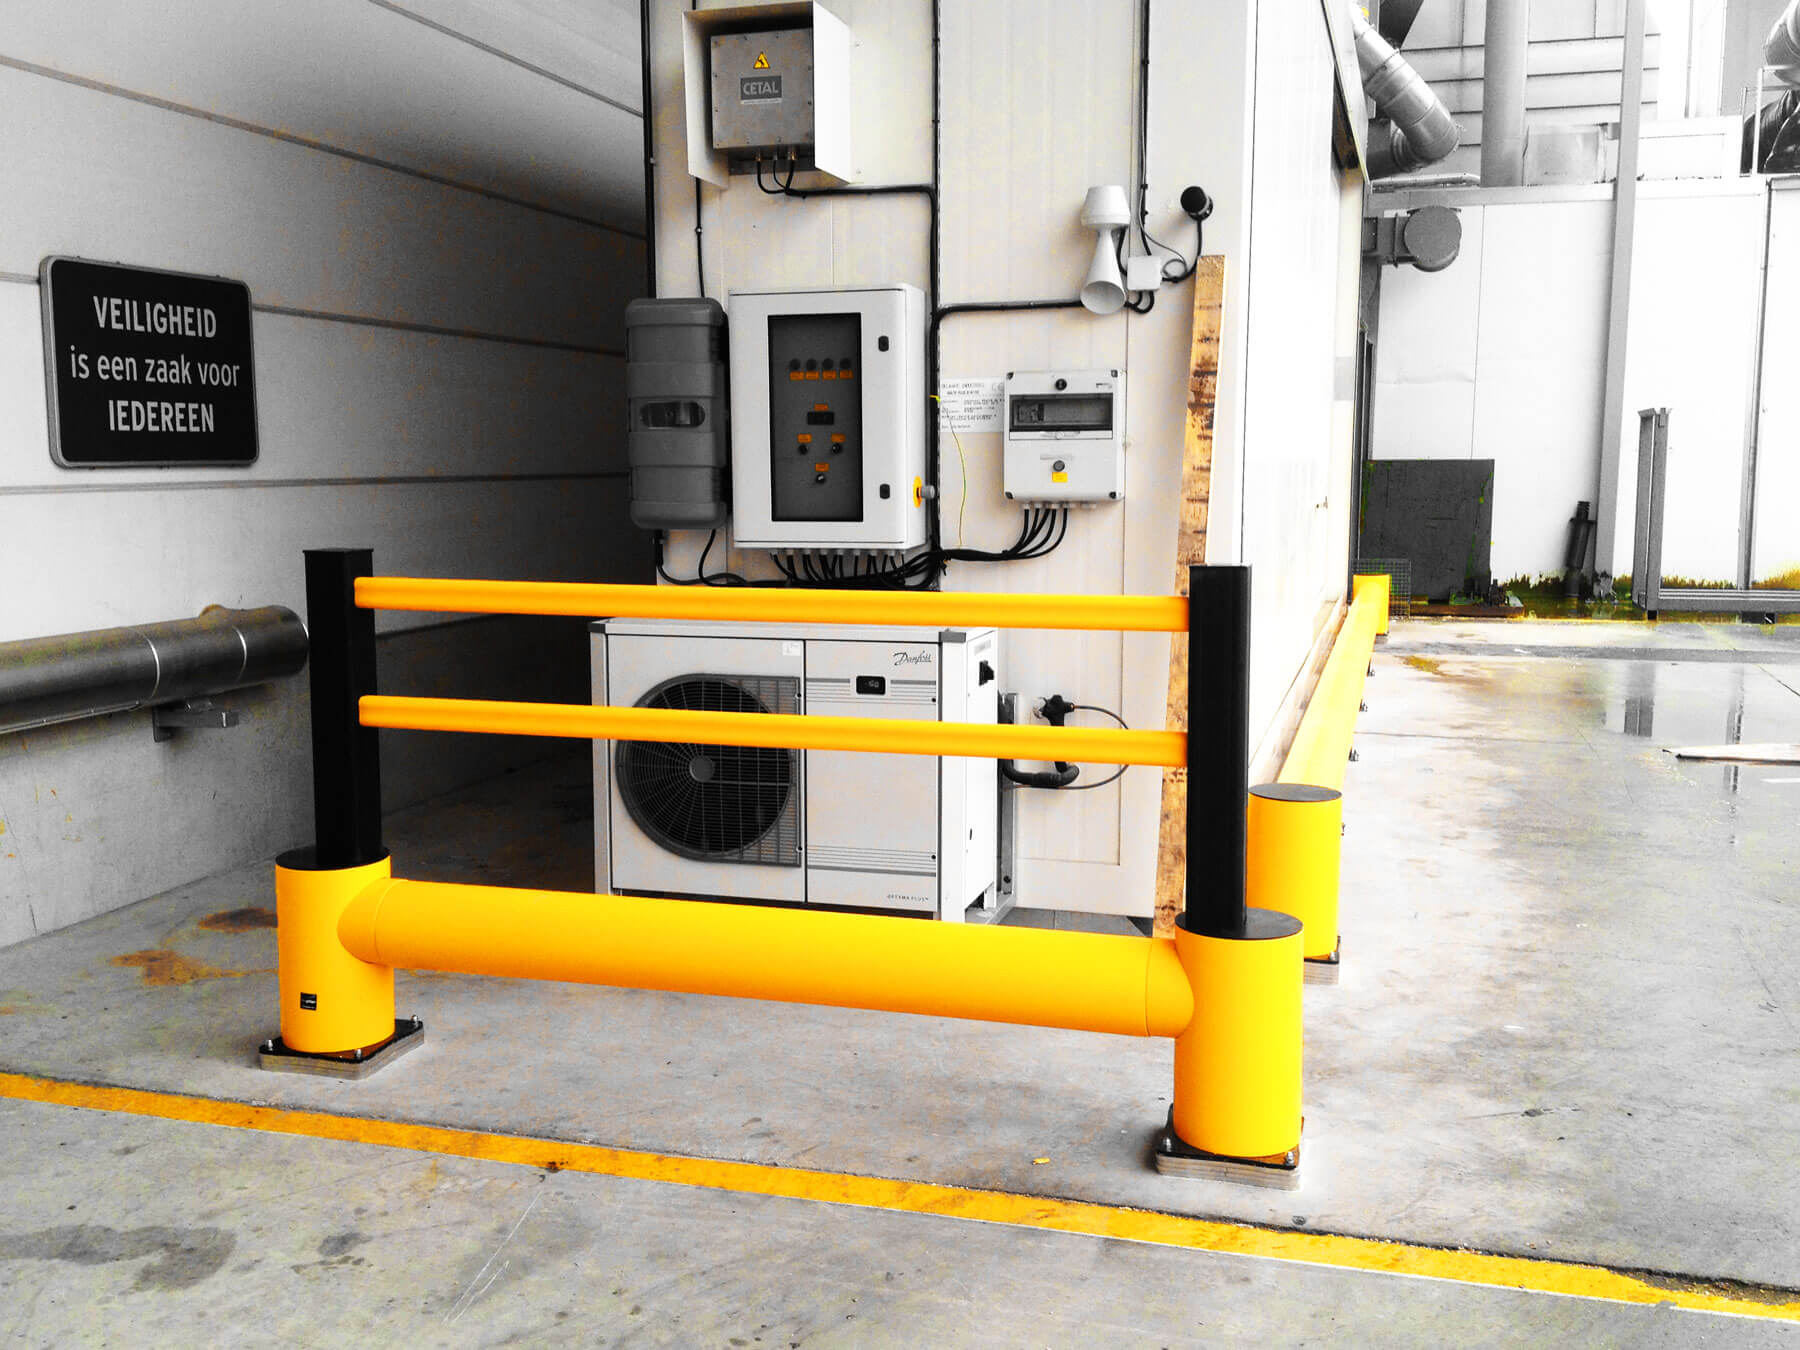 manual forklift warehouse safety barrier.jpg